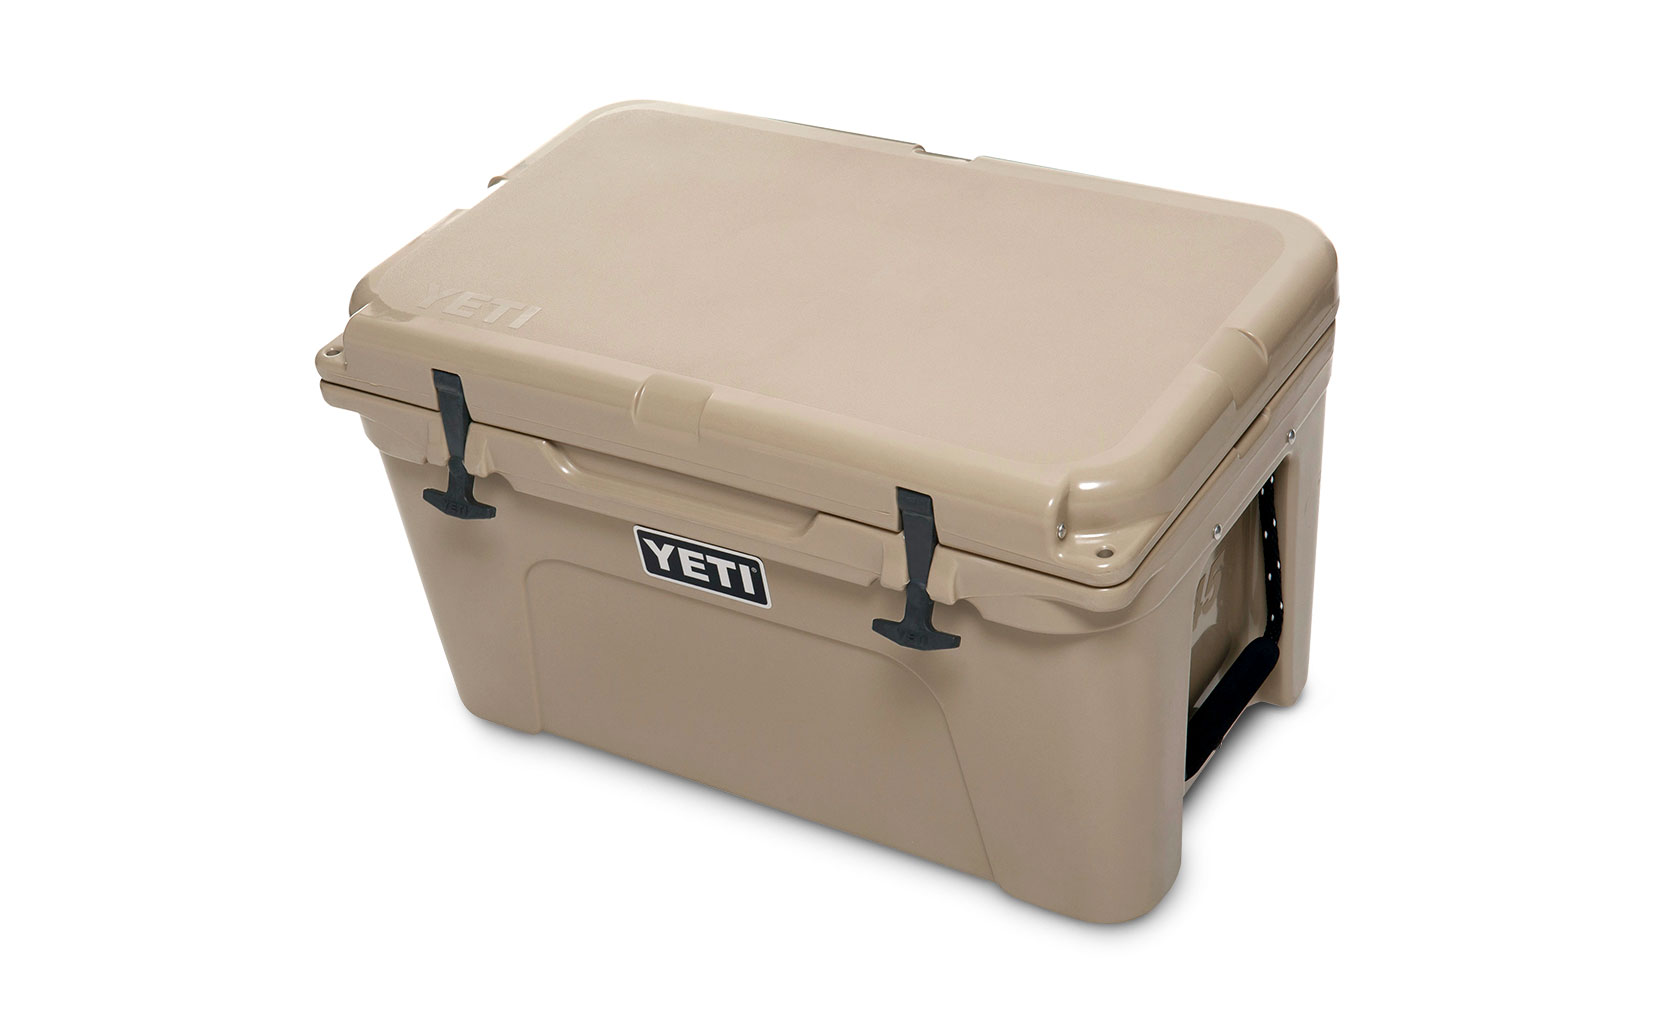 Yeti Tundra 45 tan closed